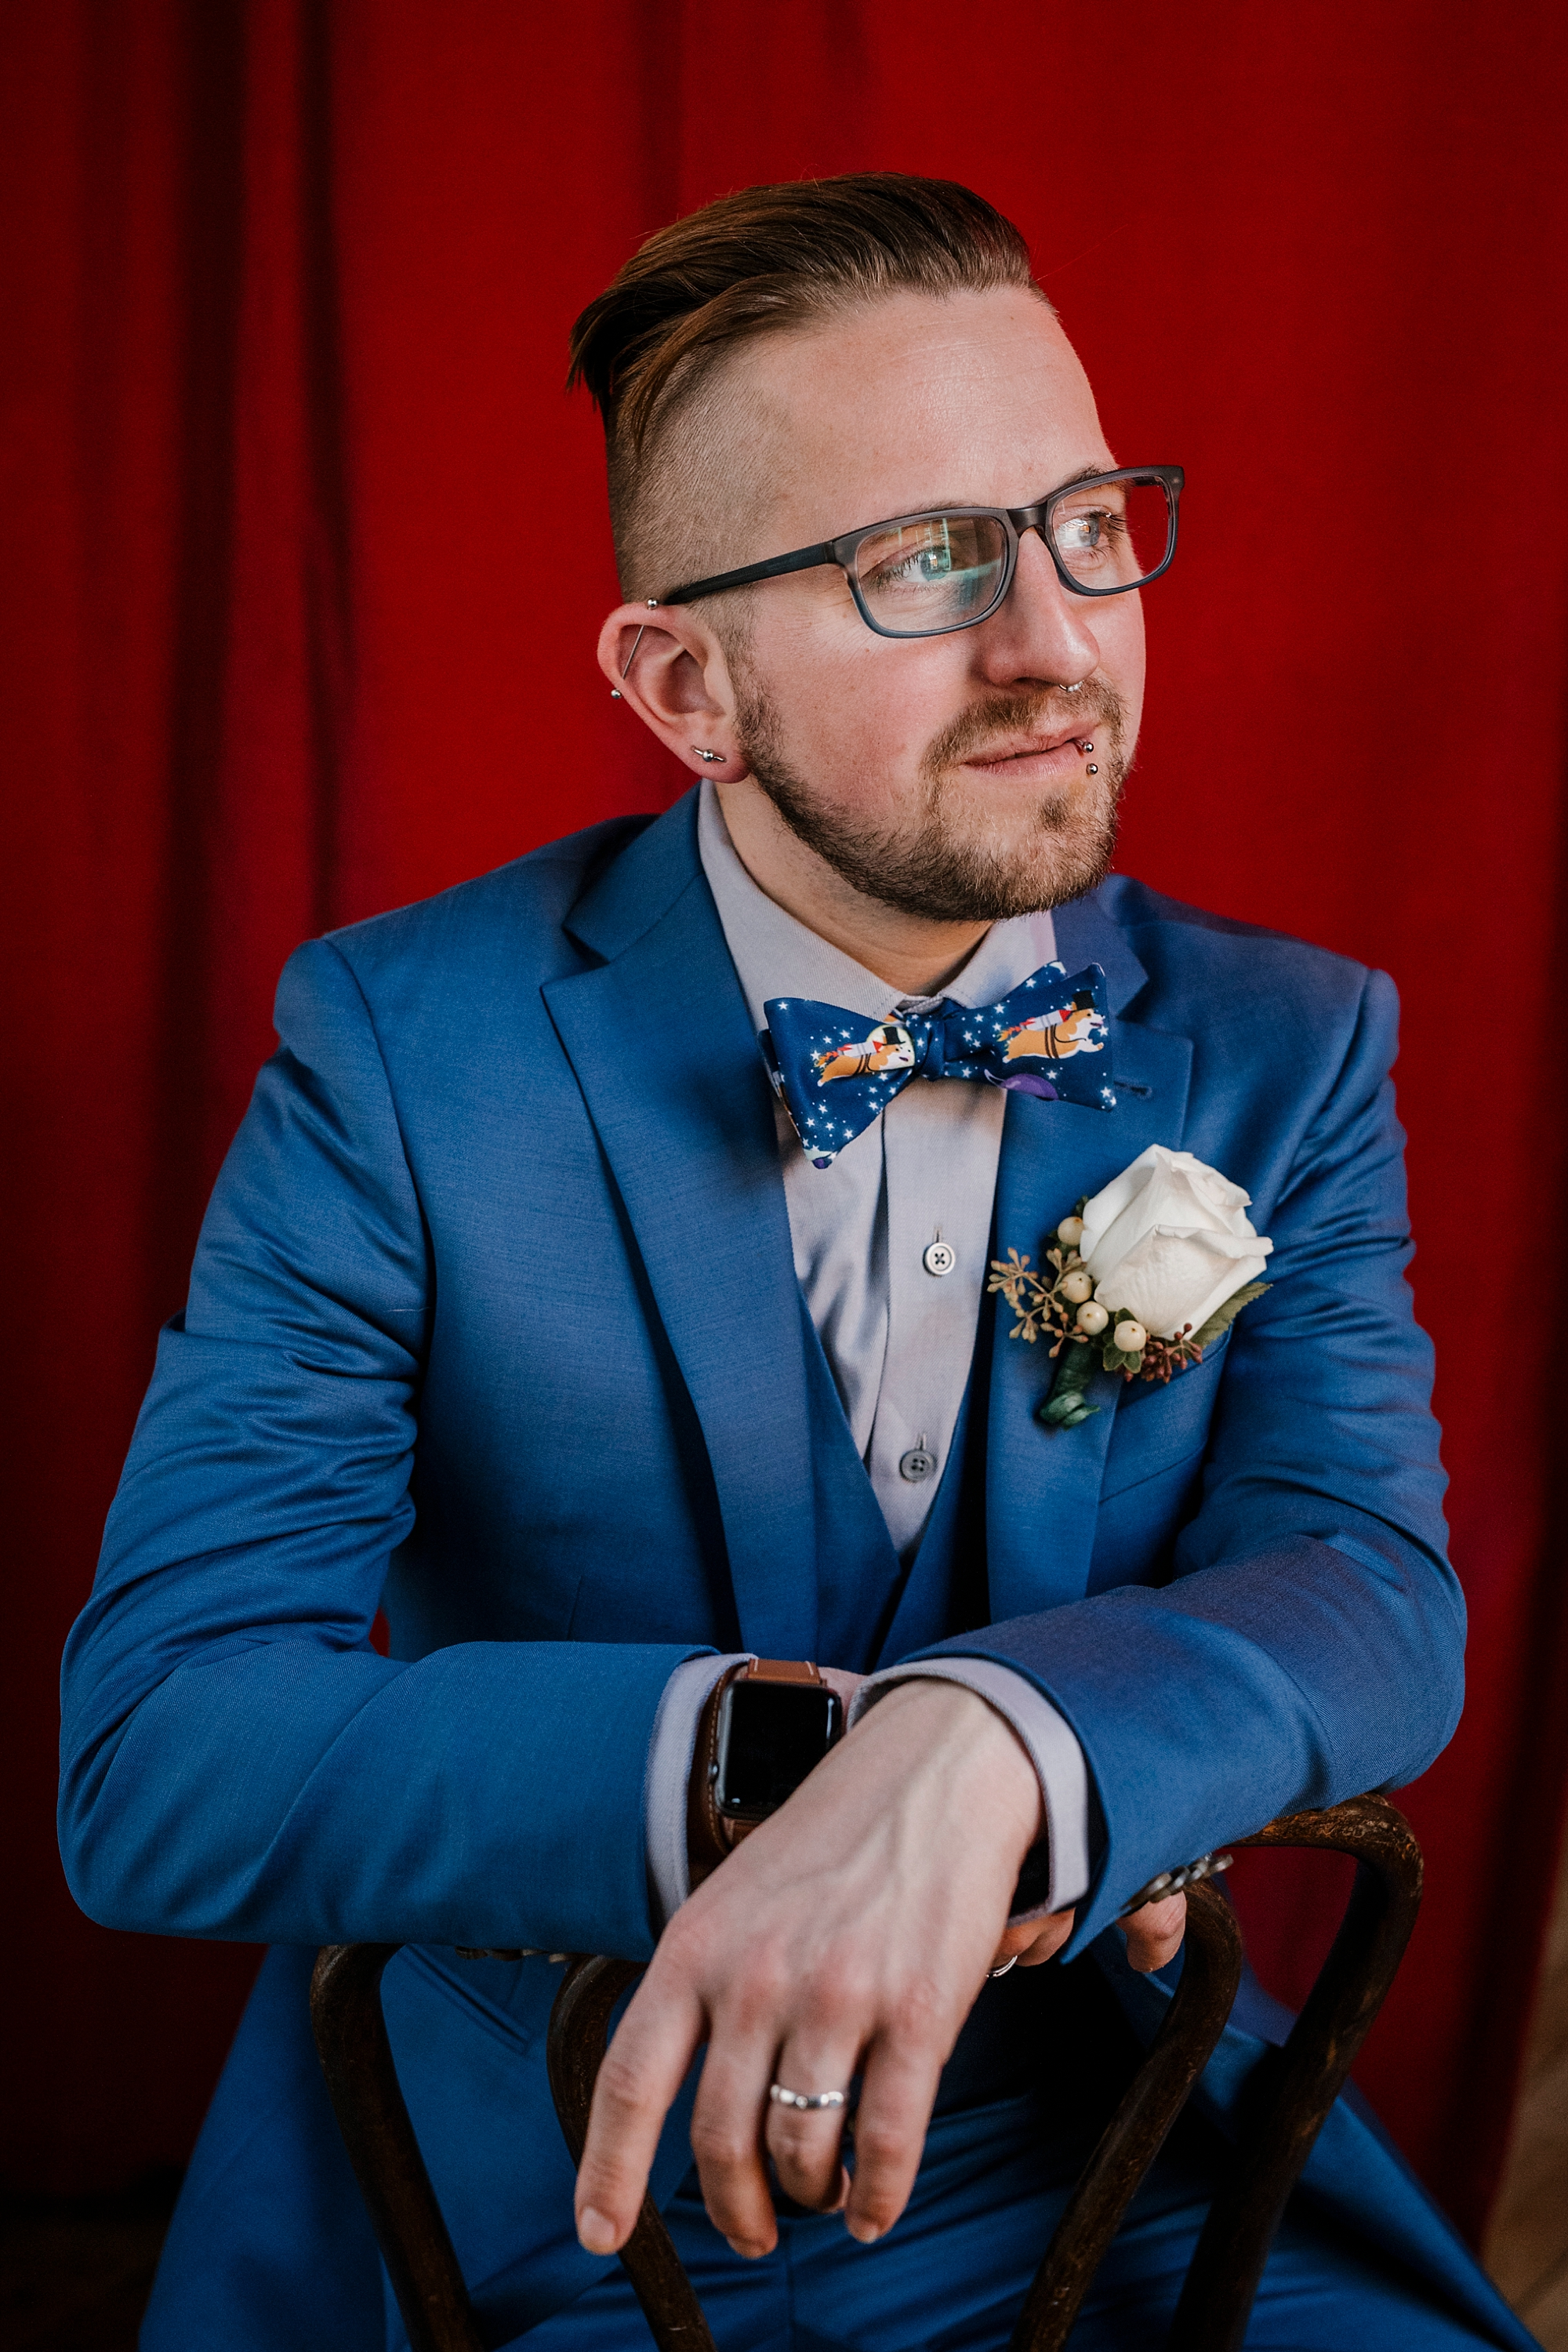 Joe_Mac_Creative_Philadelphia_Philly_LGBT_Gay_Engagement_Wedding_Photography__0148.jpg